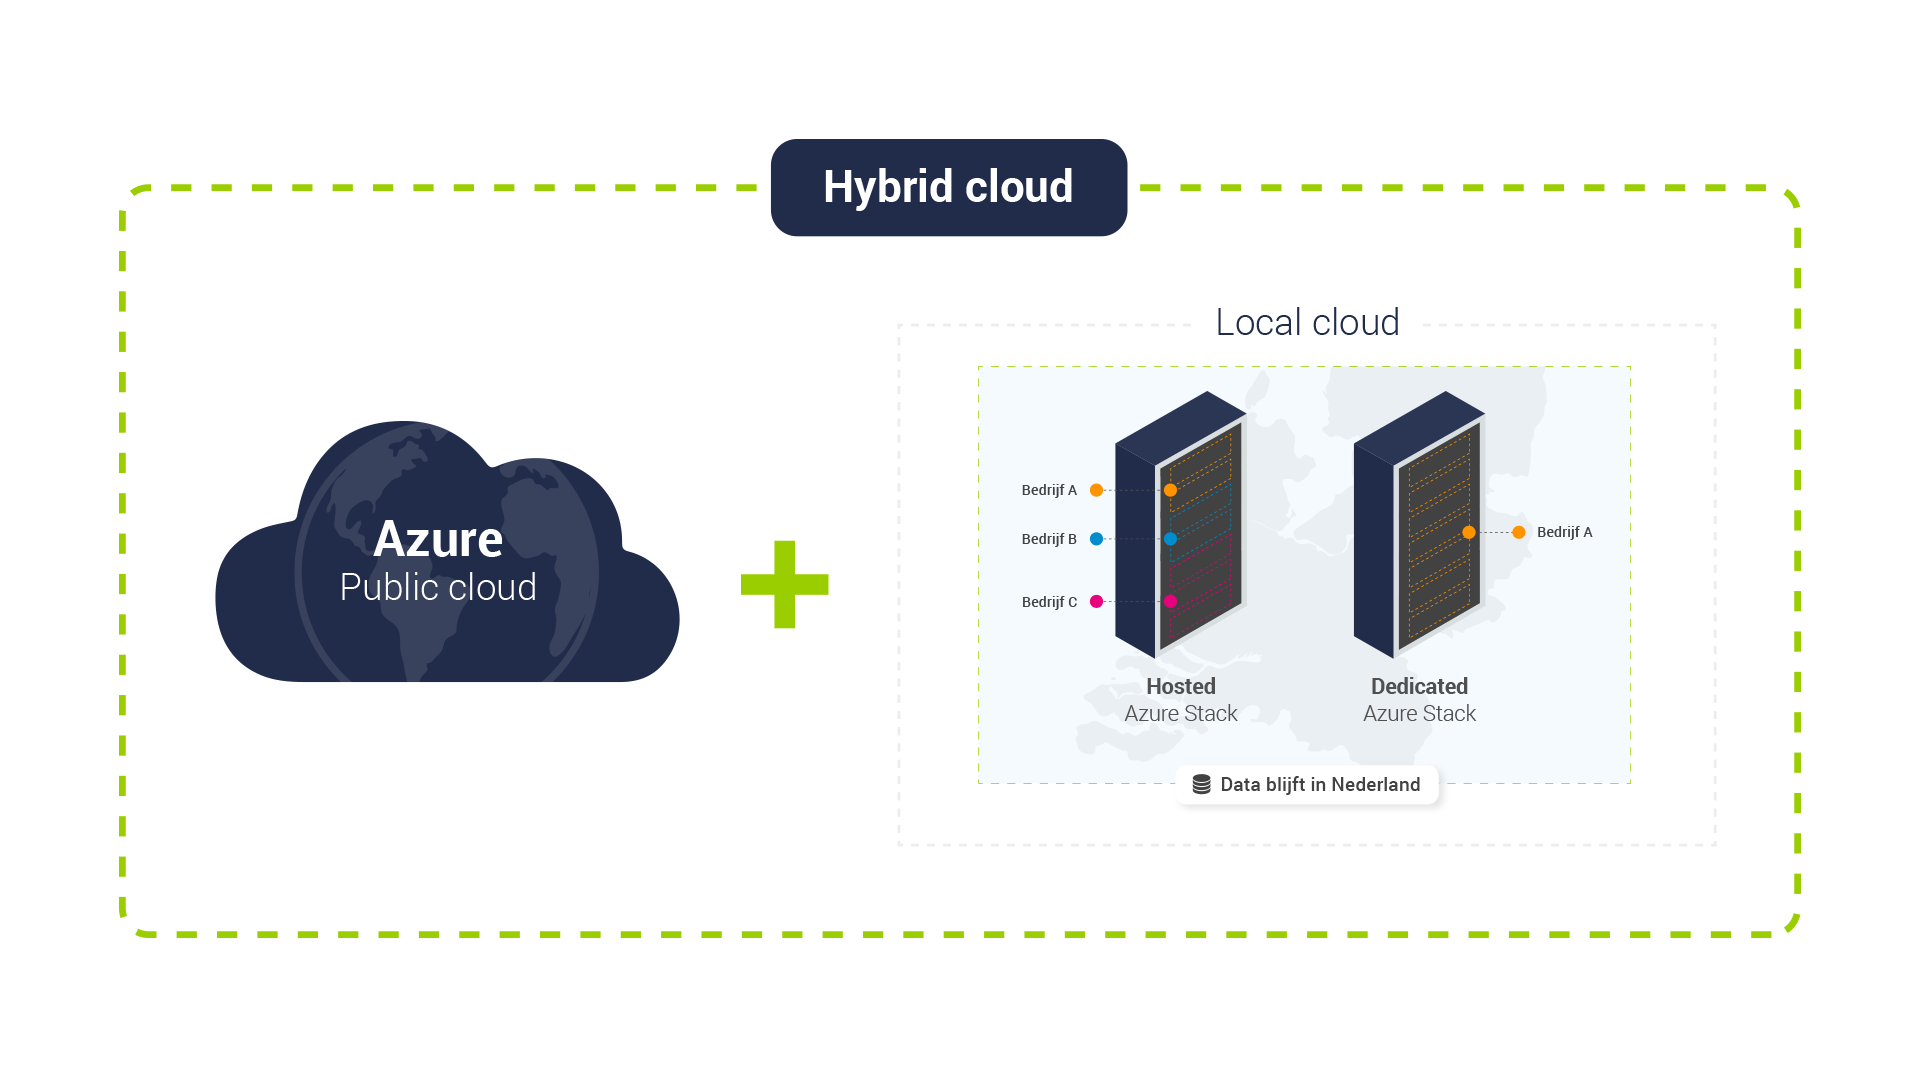 De Hybric cloud is de public cloud met local cloud: de data blijft in Nederland.